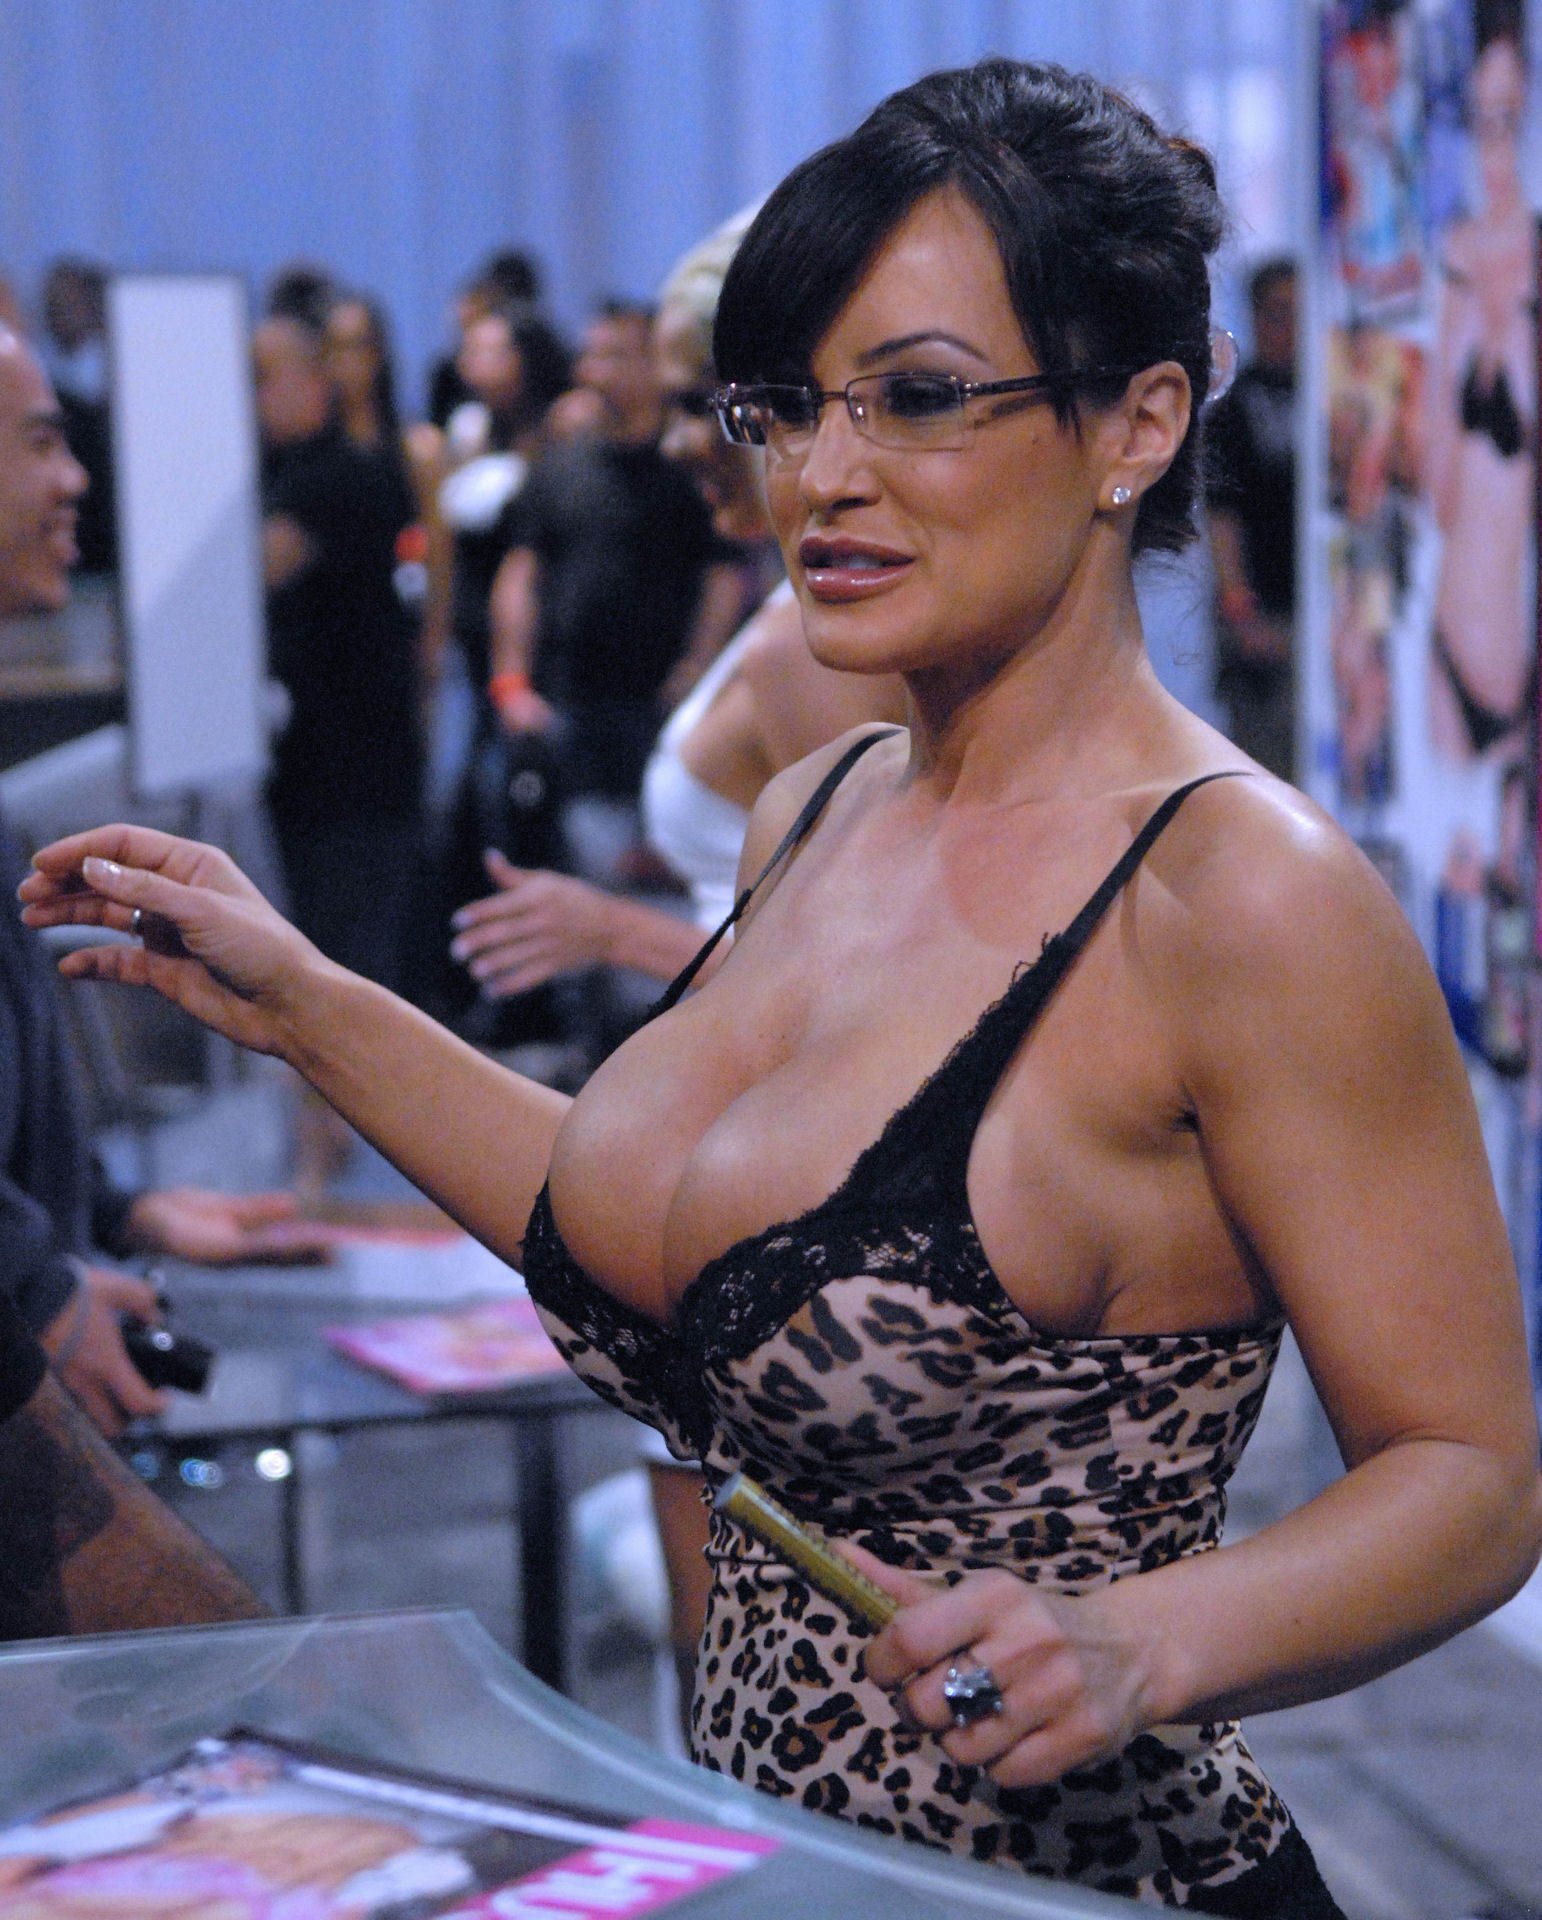 Lisa Ann Full